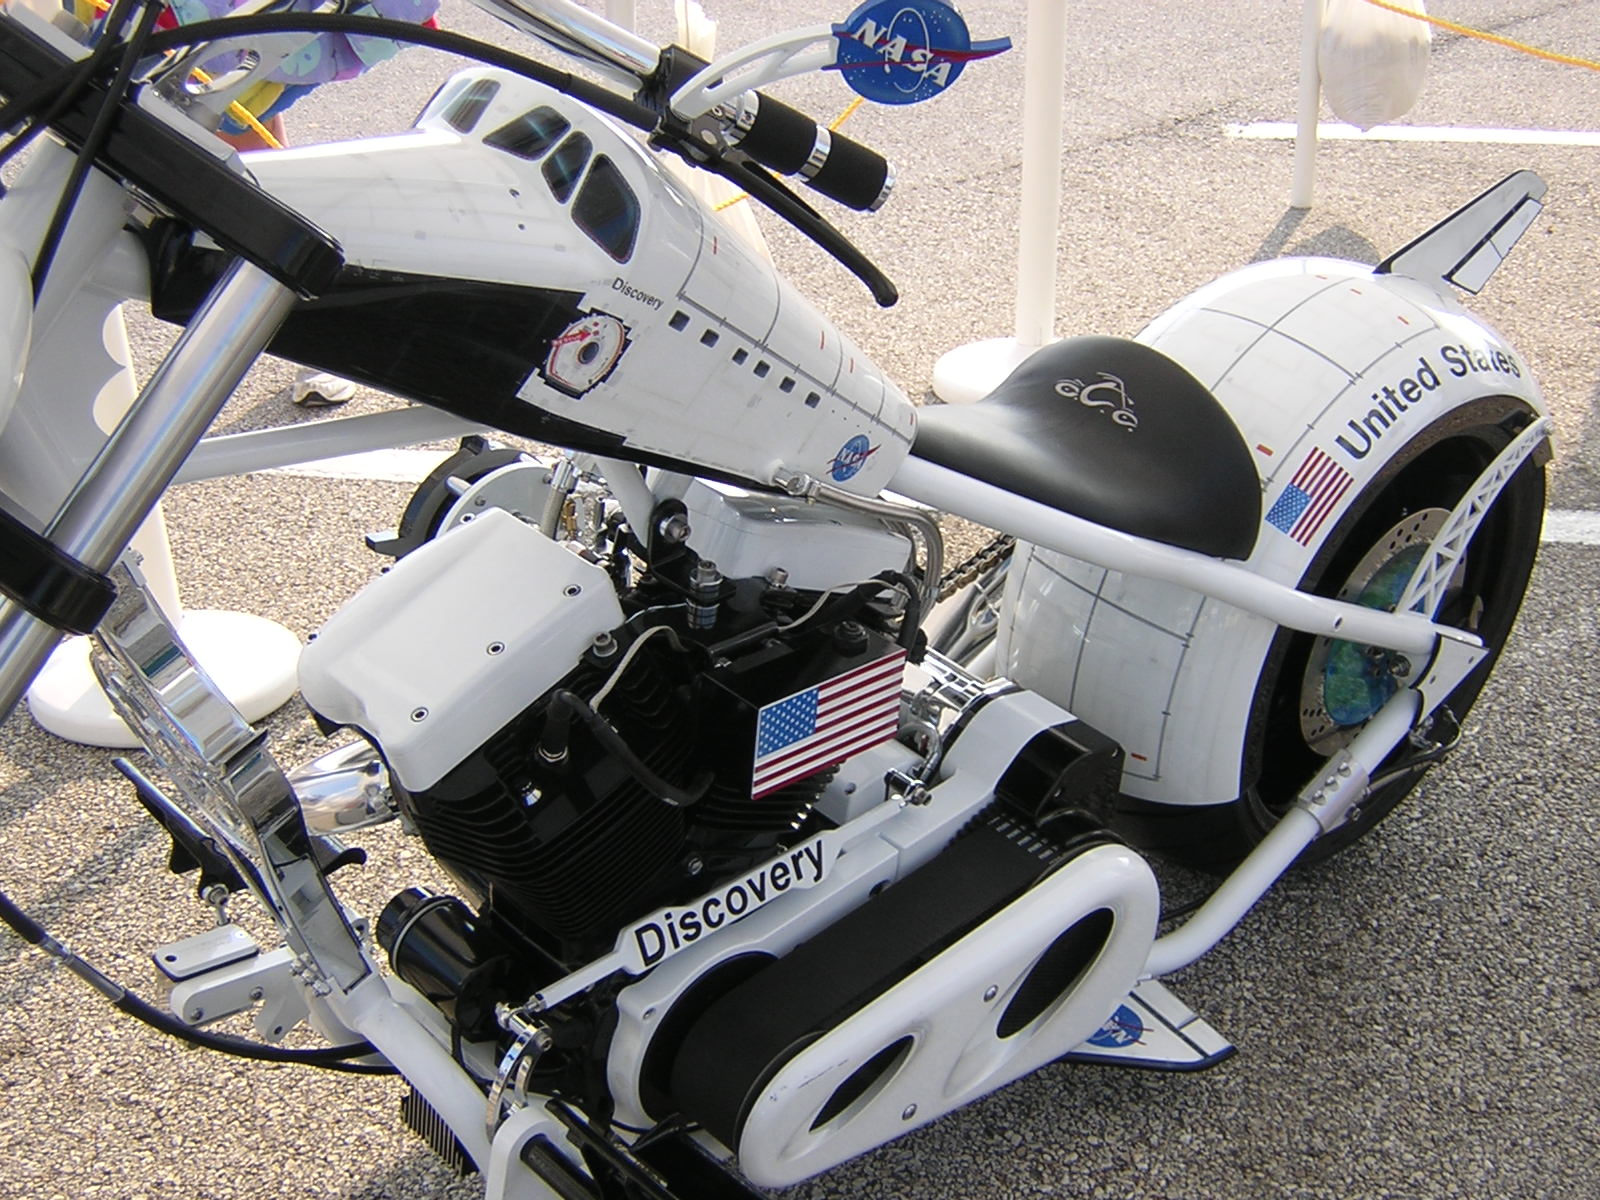 space shuttle bike occ - photo #19